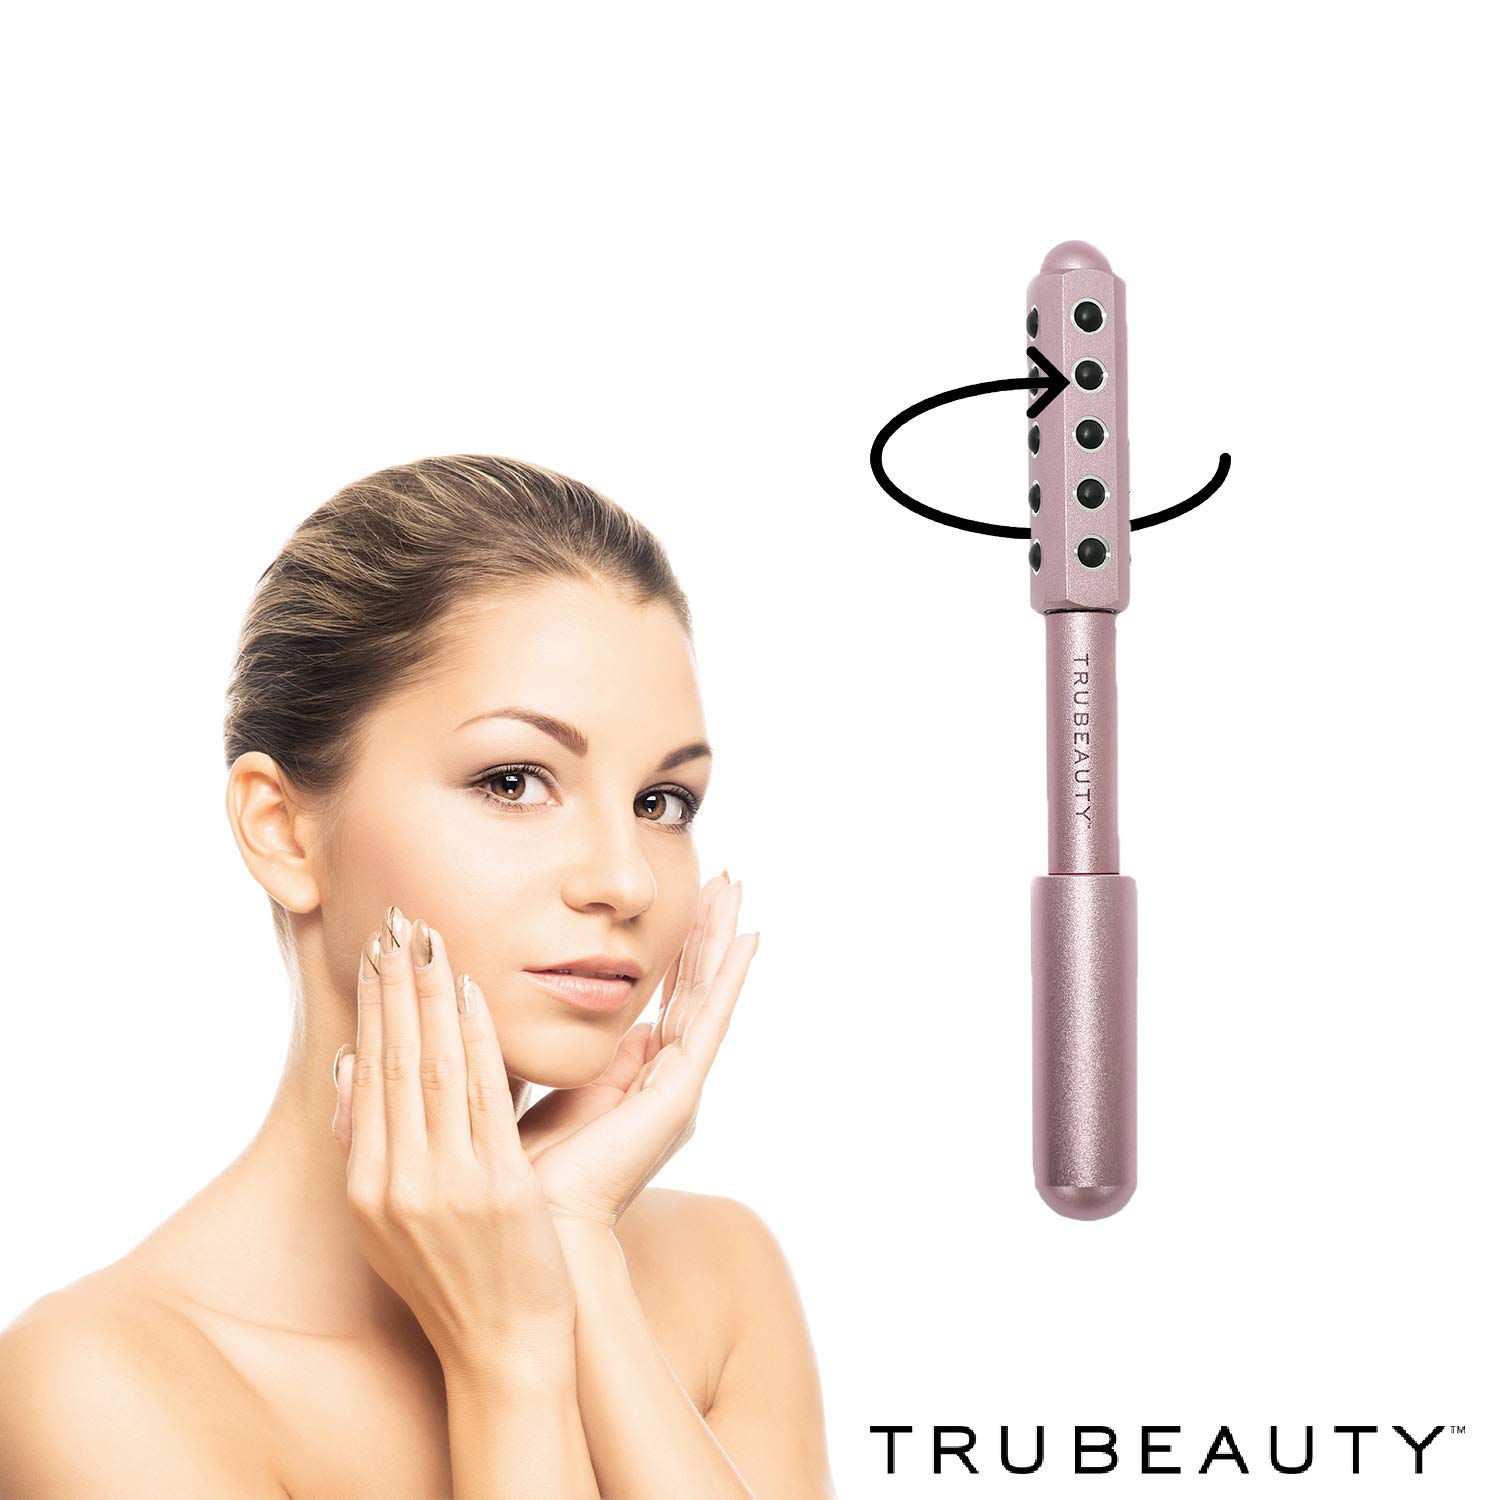 Tru Beauty, Anti-aging Derma Roller Spa Quality Facial Tool, Safe for All Skin Types - Pink by TruBeauty